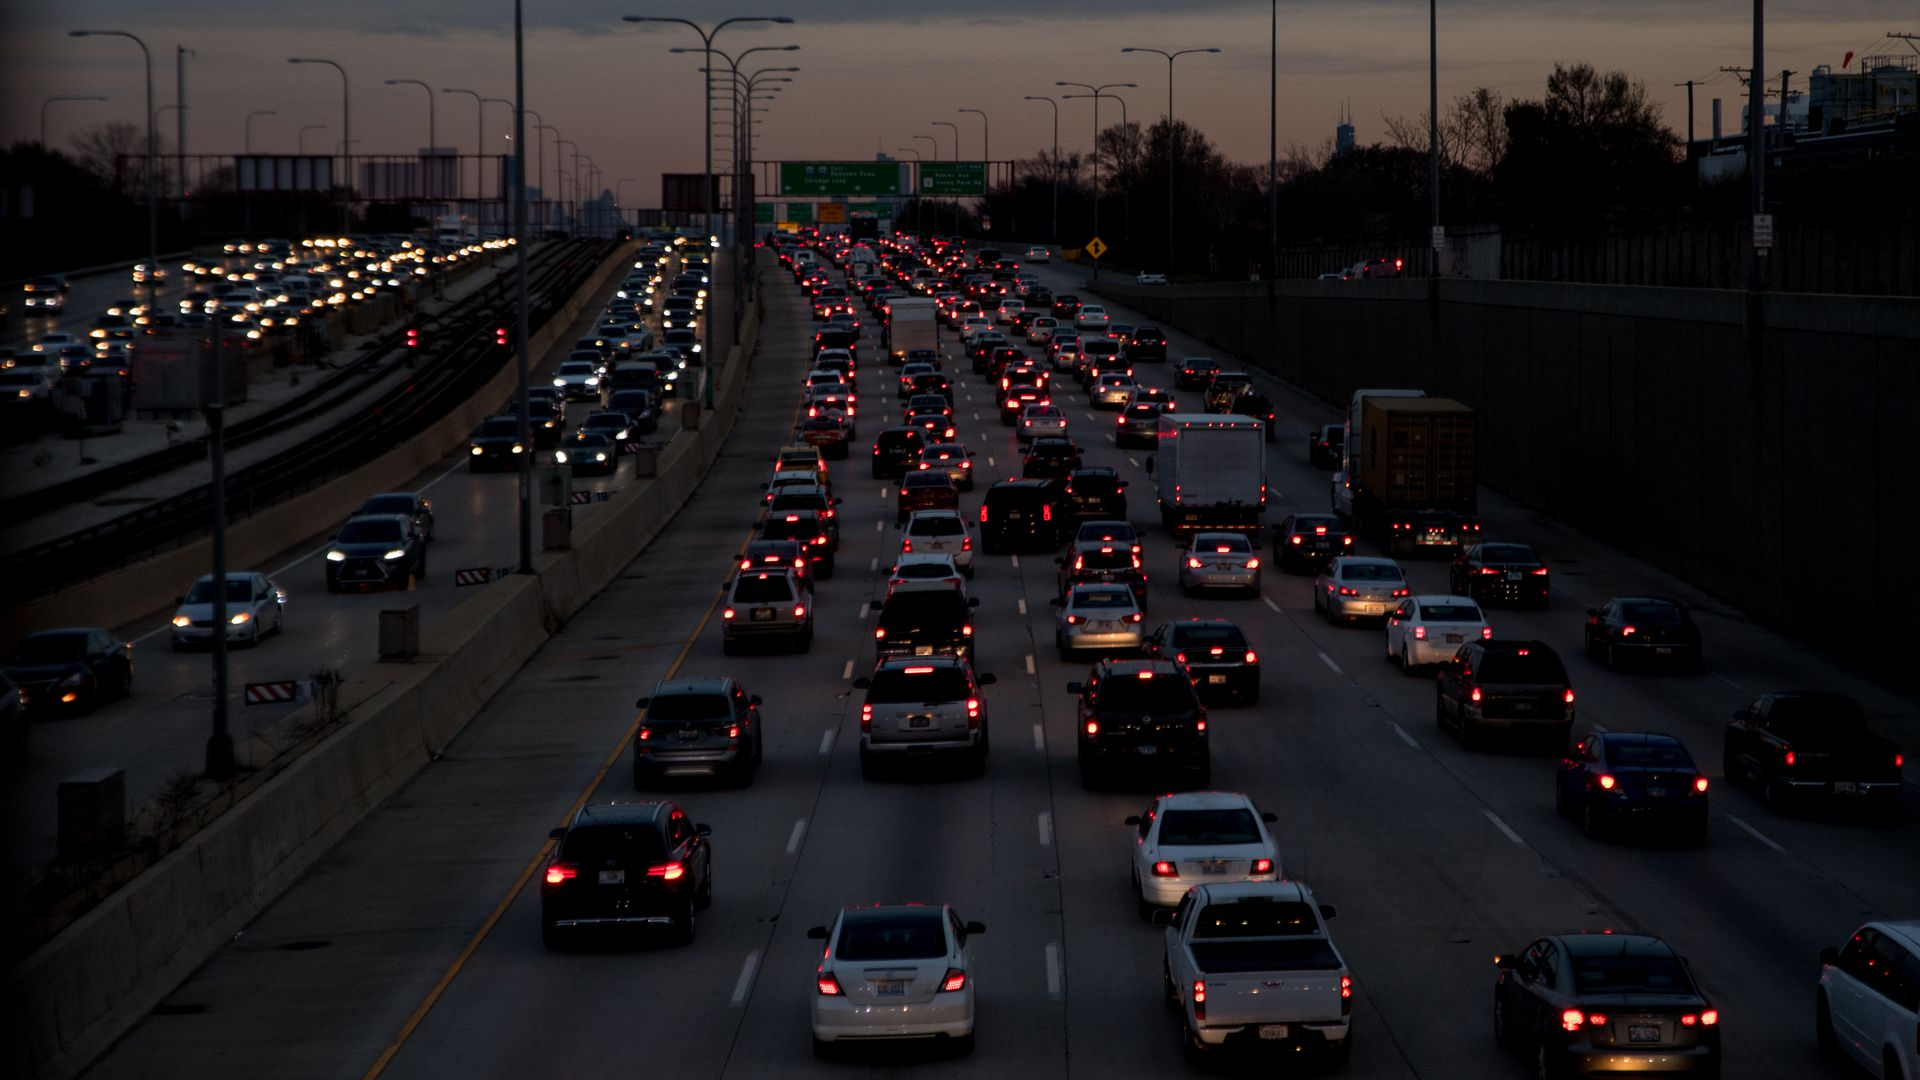 Masses of vehicles move slowly on the Montrose Ave overpass in Chicago at dusk